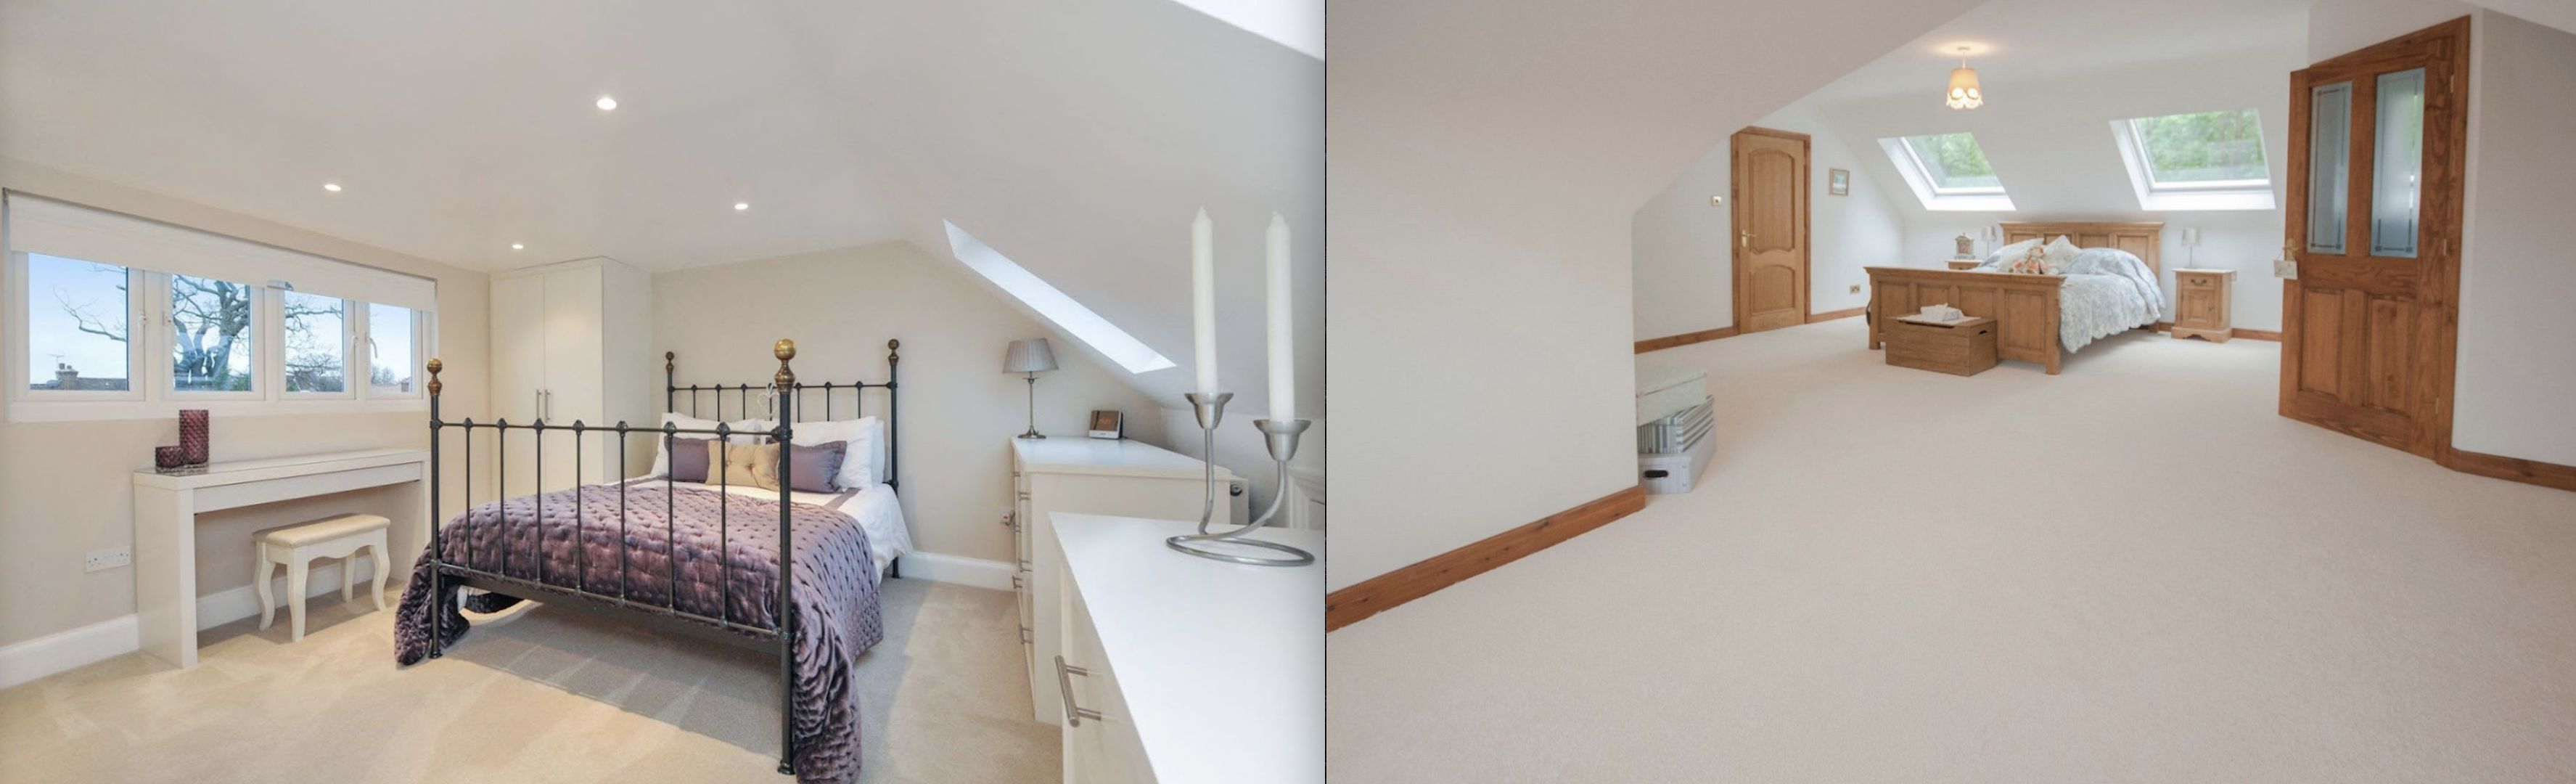 Beautiful Dormer loft conversion in Lancaster, creating a new master bedroom with private bathroom, walk in wardrobe and stunning new oak staircase with Velux polyurethane windows.